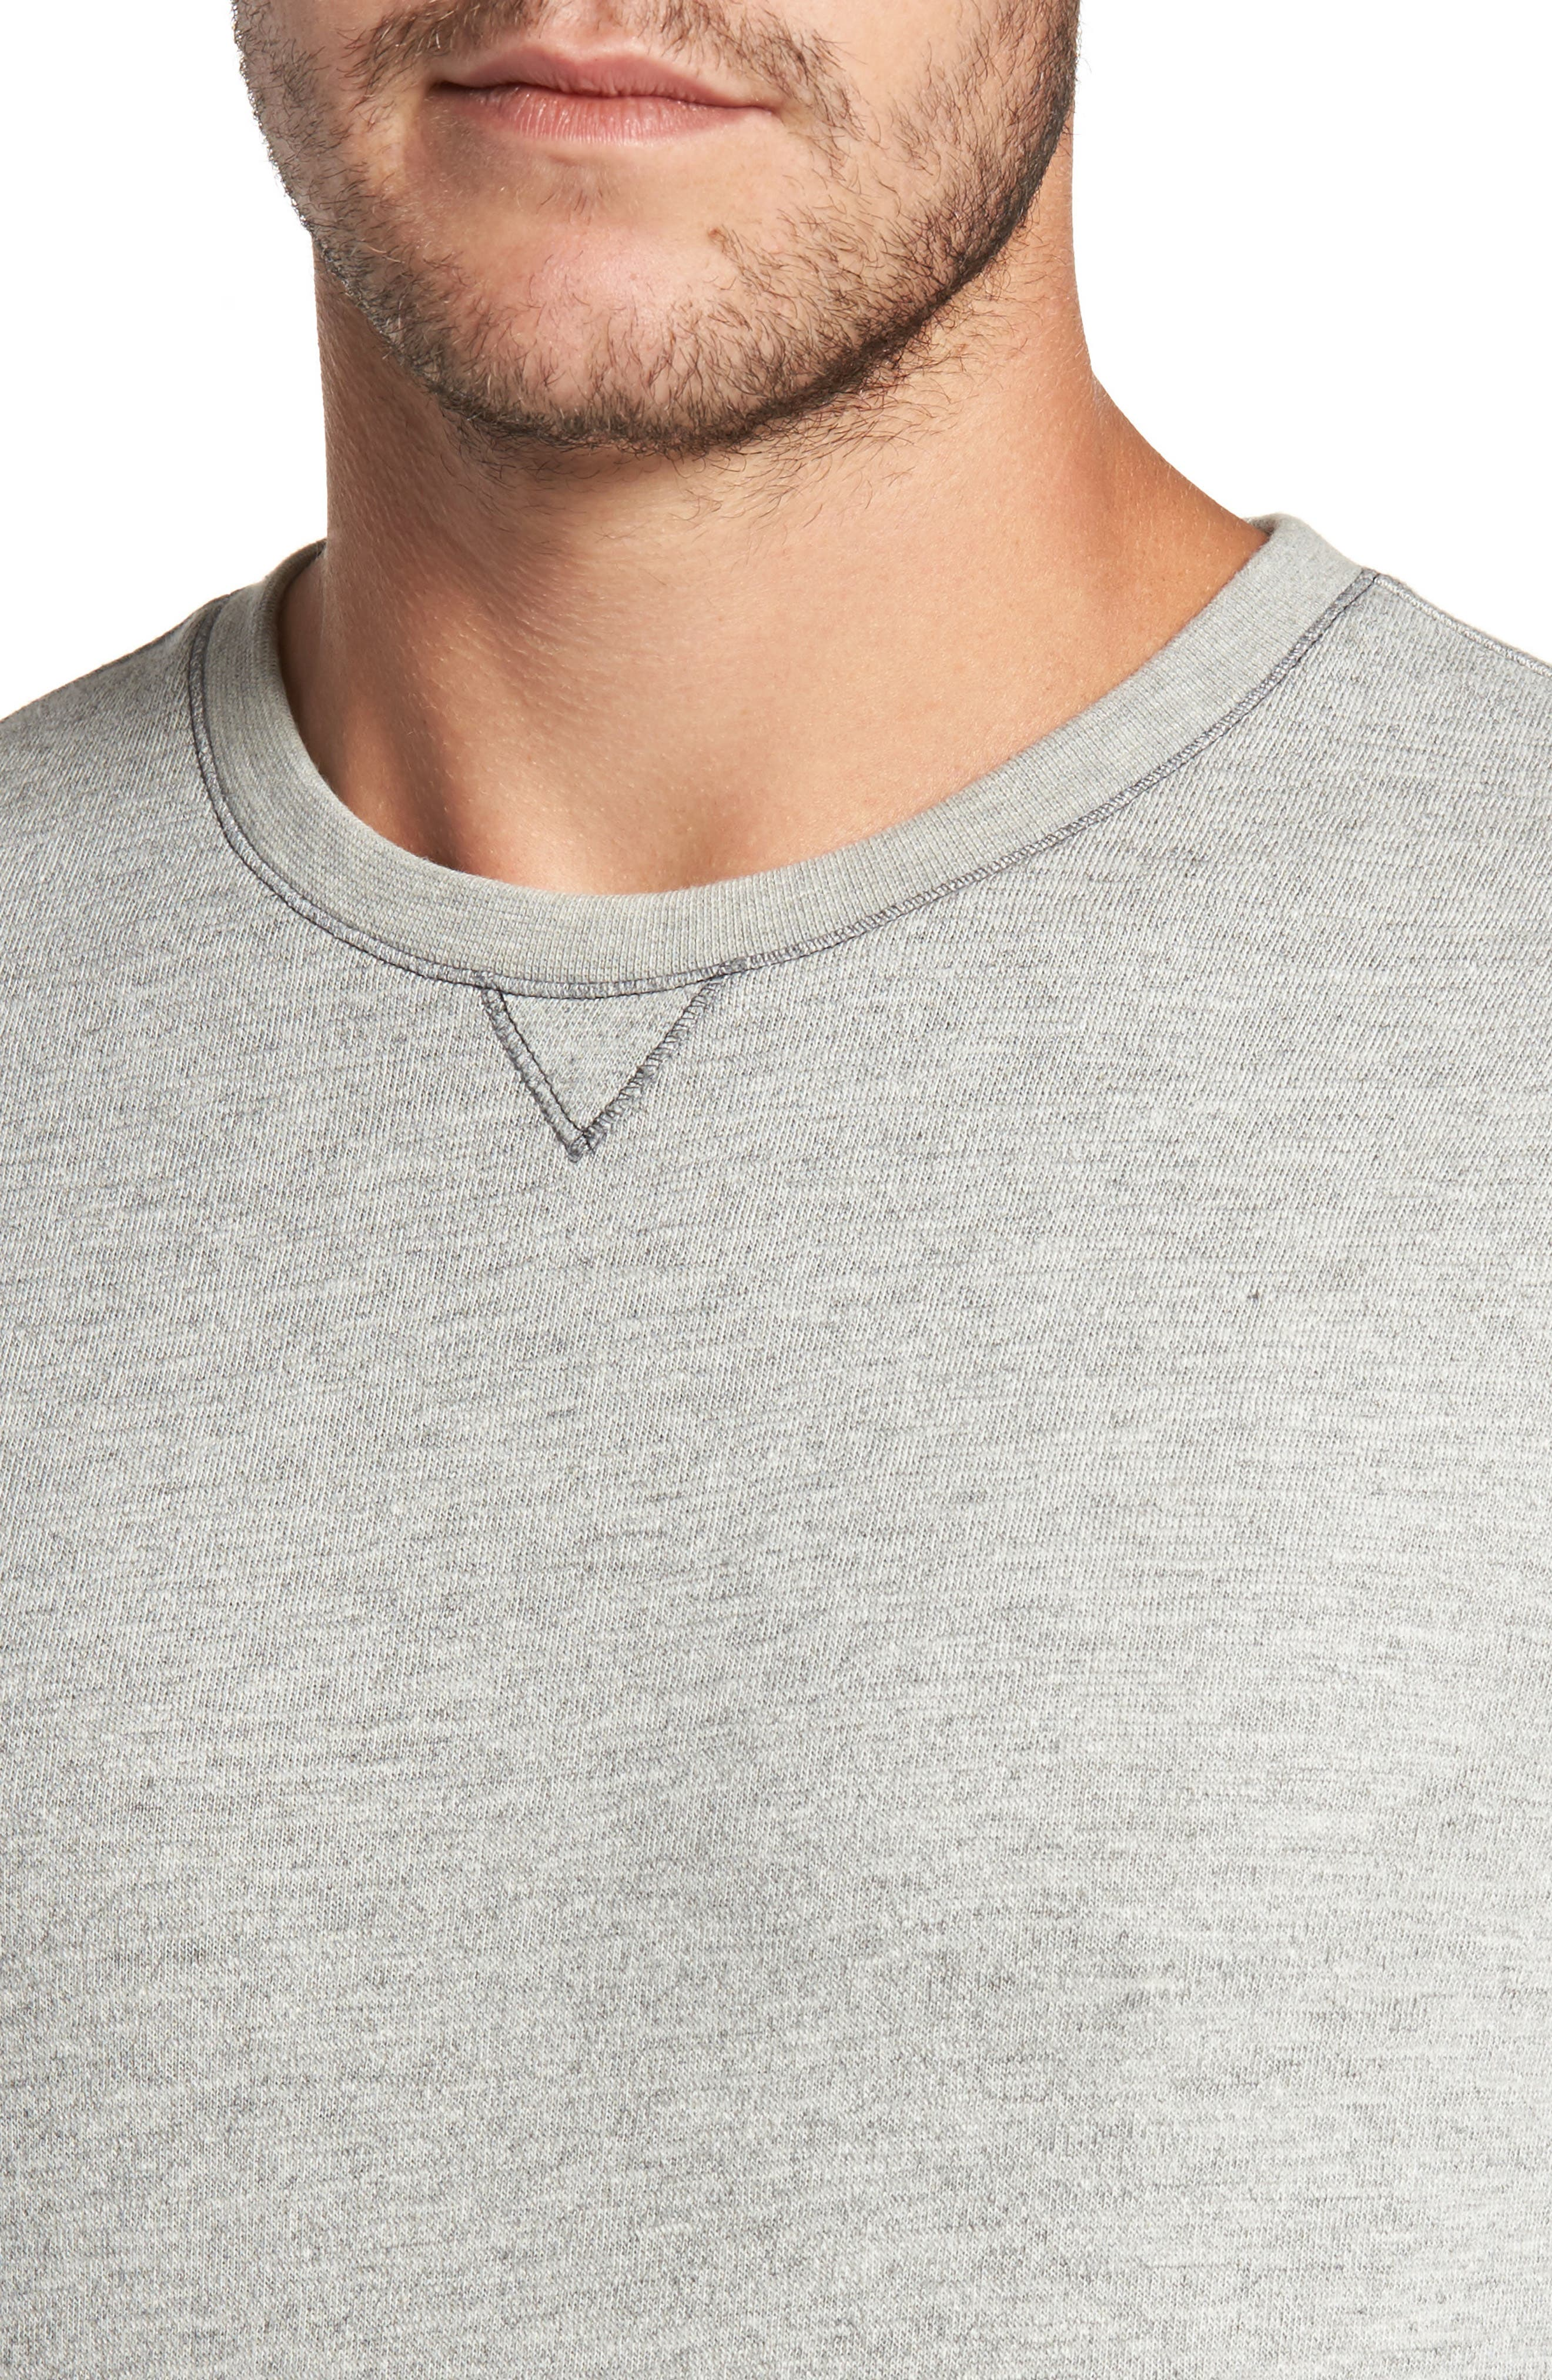 Vienna French Terry T-Shirt,                             Alternate thumbnail 4, color,                             Light Grey